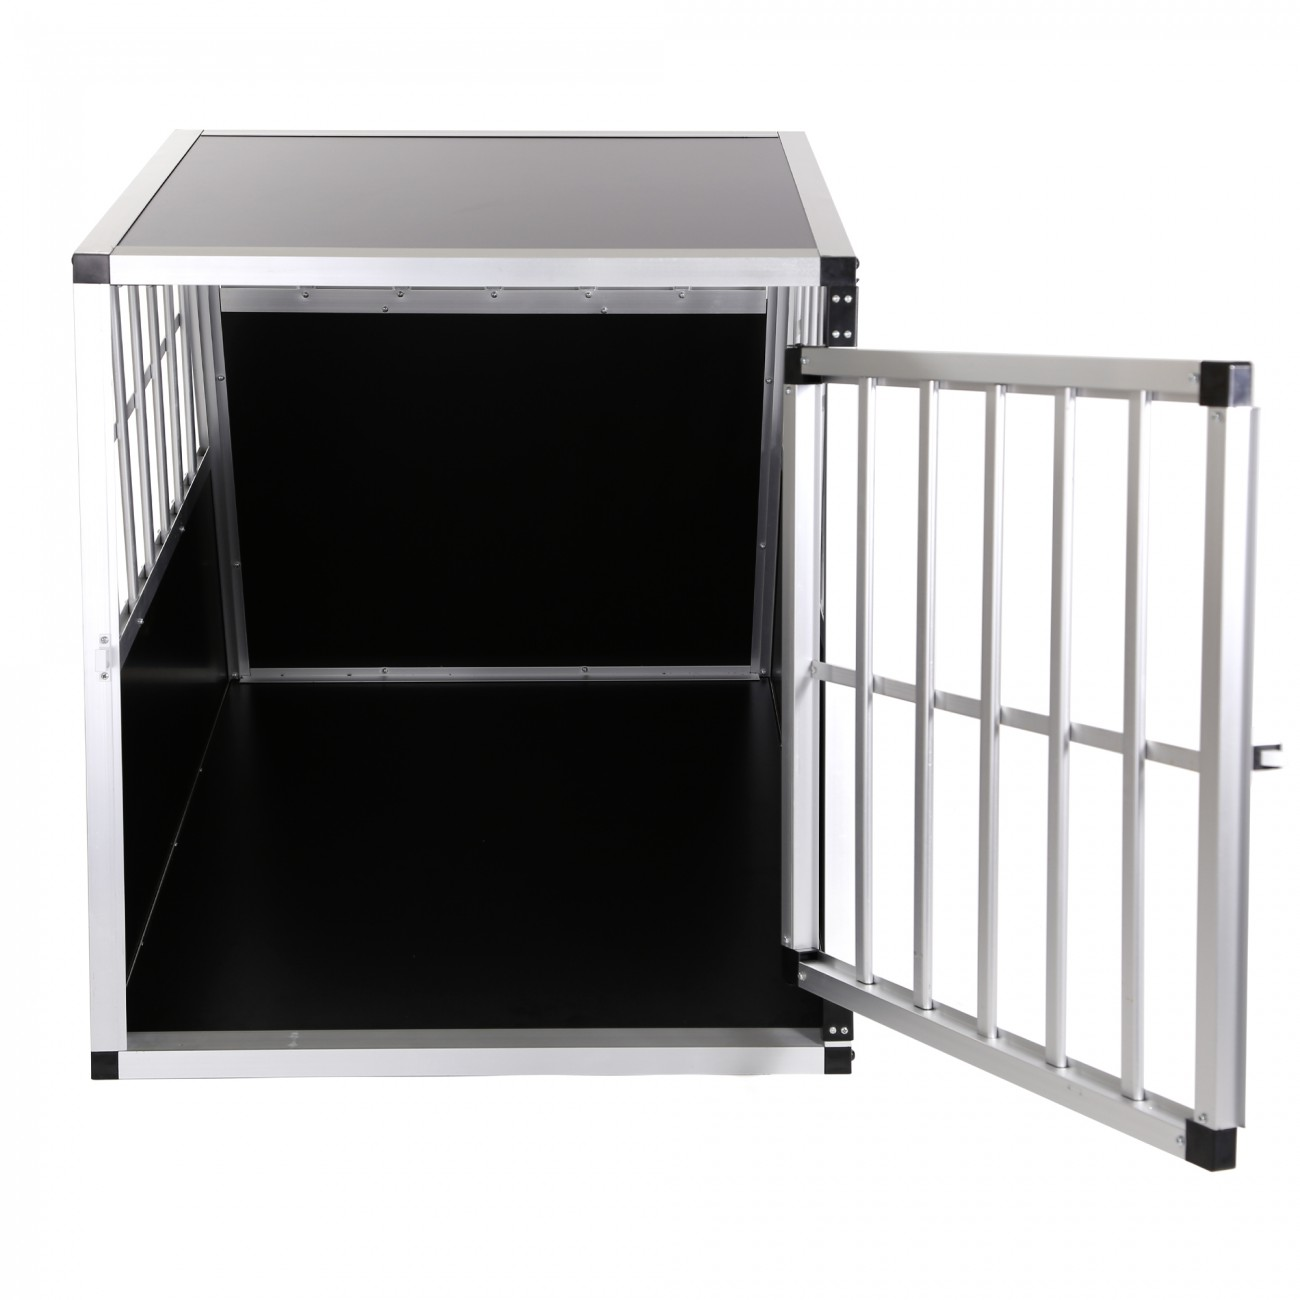 zoomundo cage de transport pour chien 1 porte premium. Black Bedroom Furniture Sets. Home Design Ideas